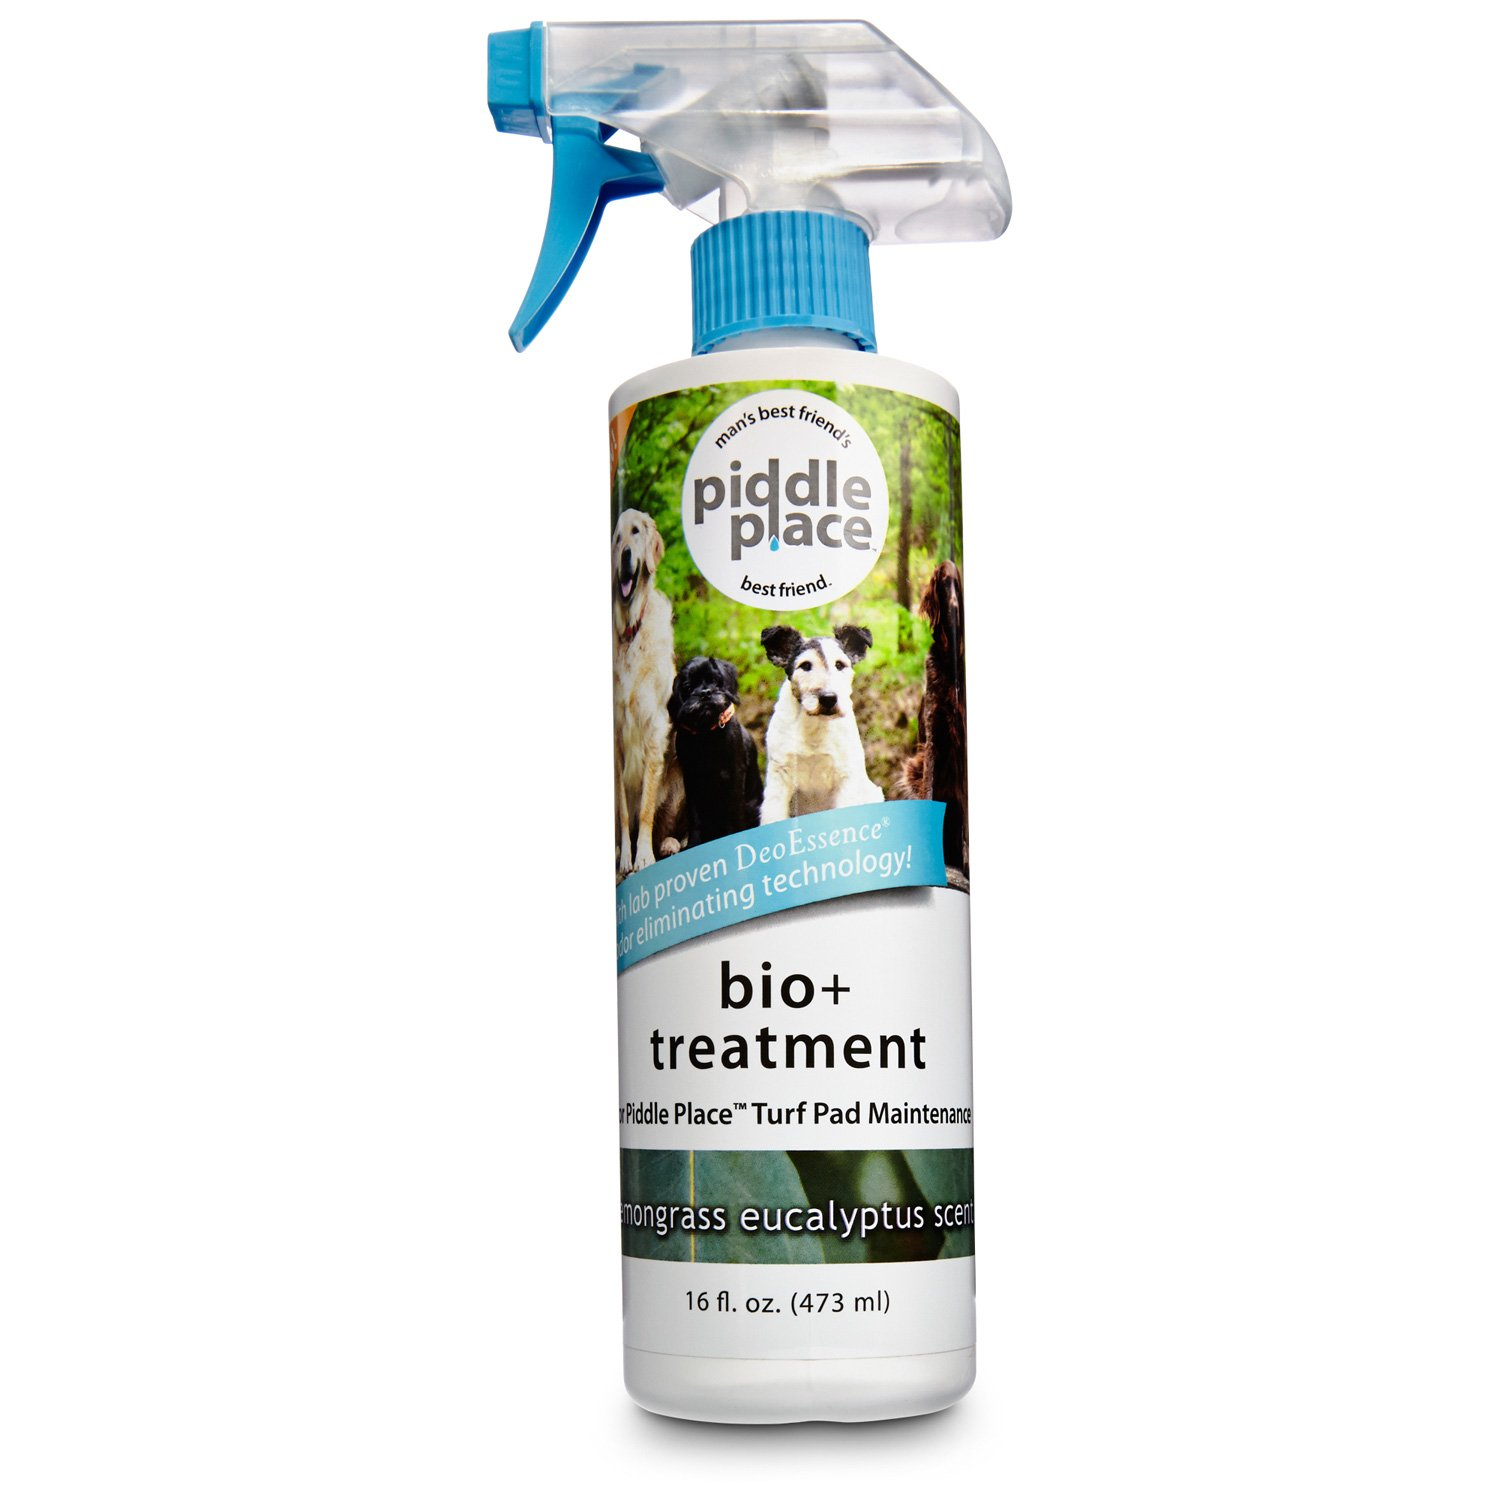 Piddle Place Bio+Treatment Turf Pad Maintenance